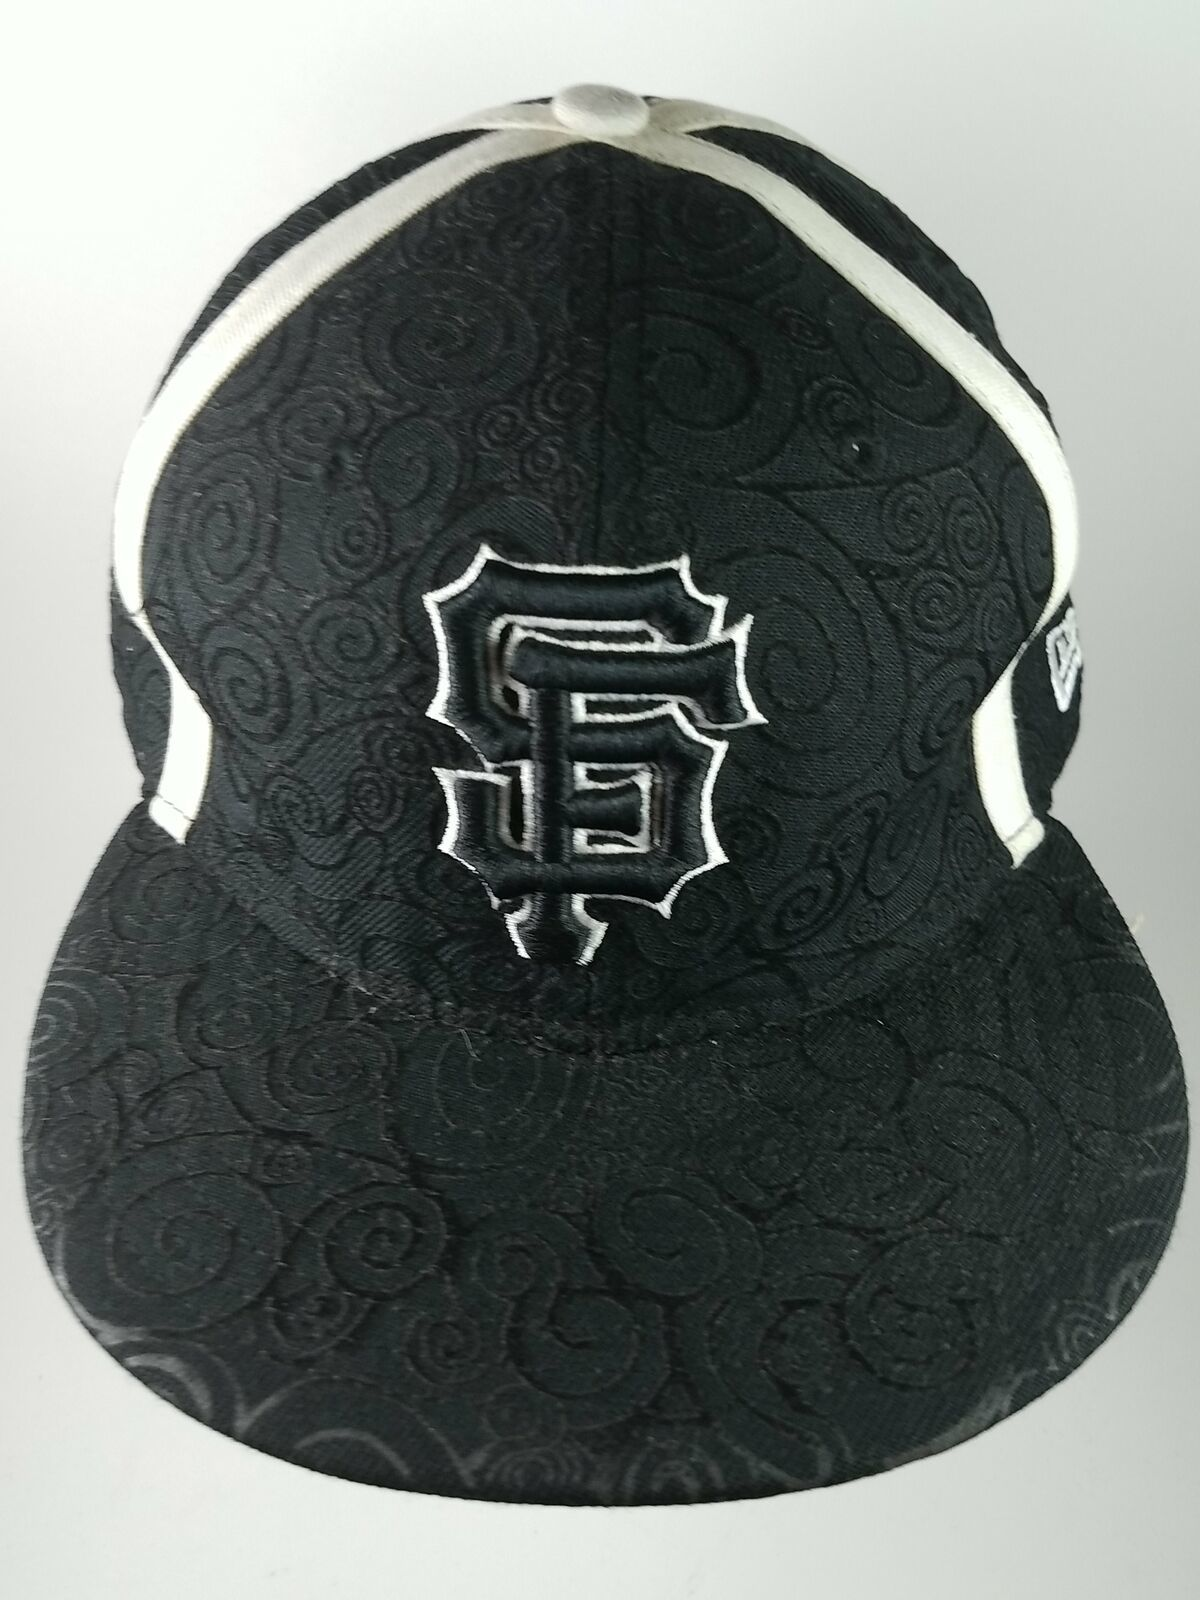 New Era 59FIFTY Genuine Merchandise SF San Francisco Fitted Cap Hat